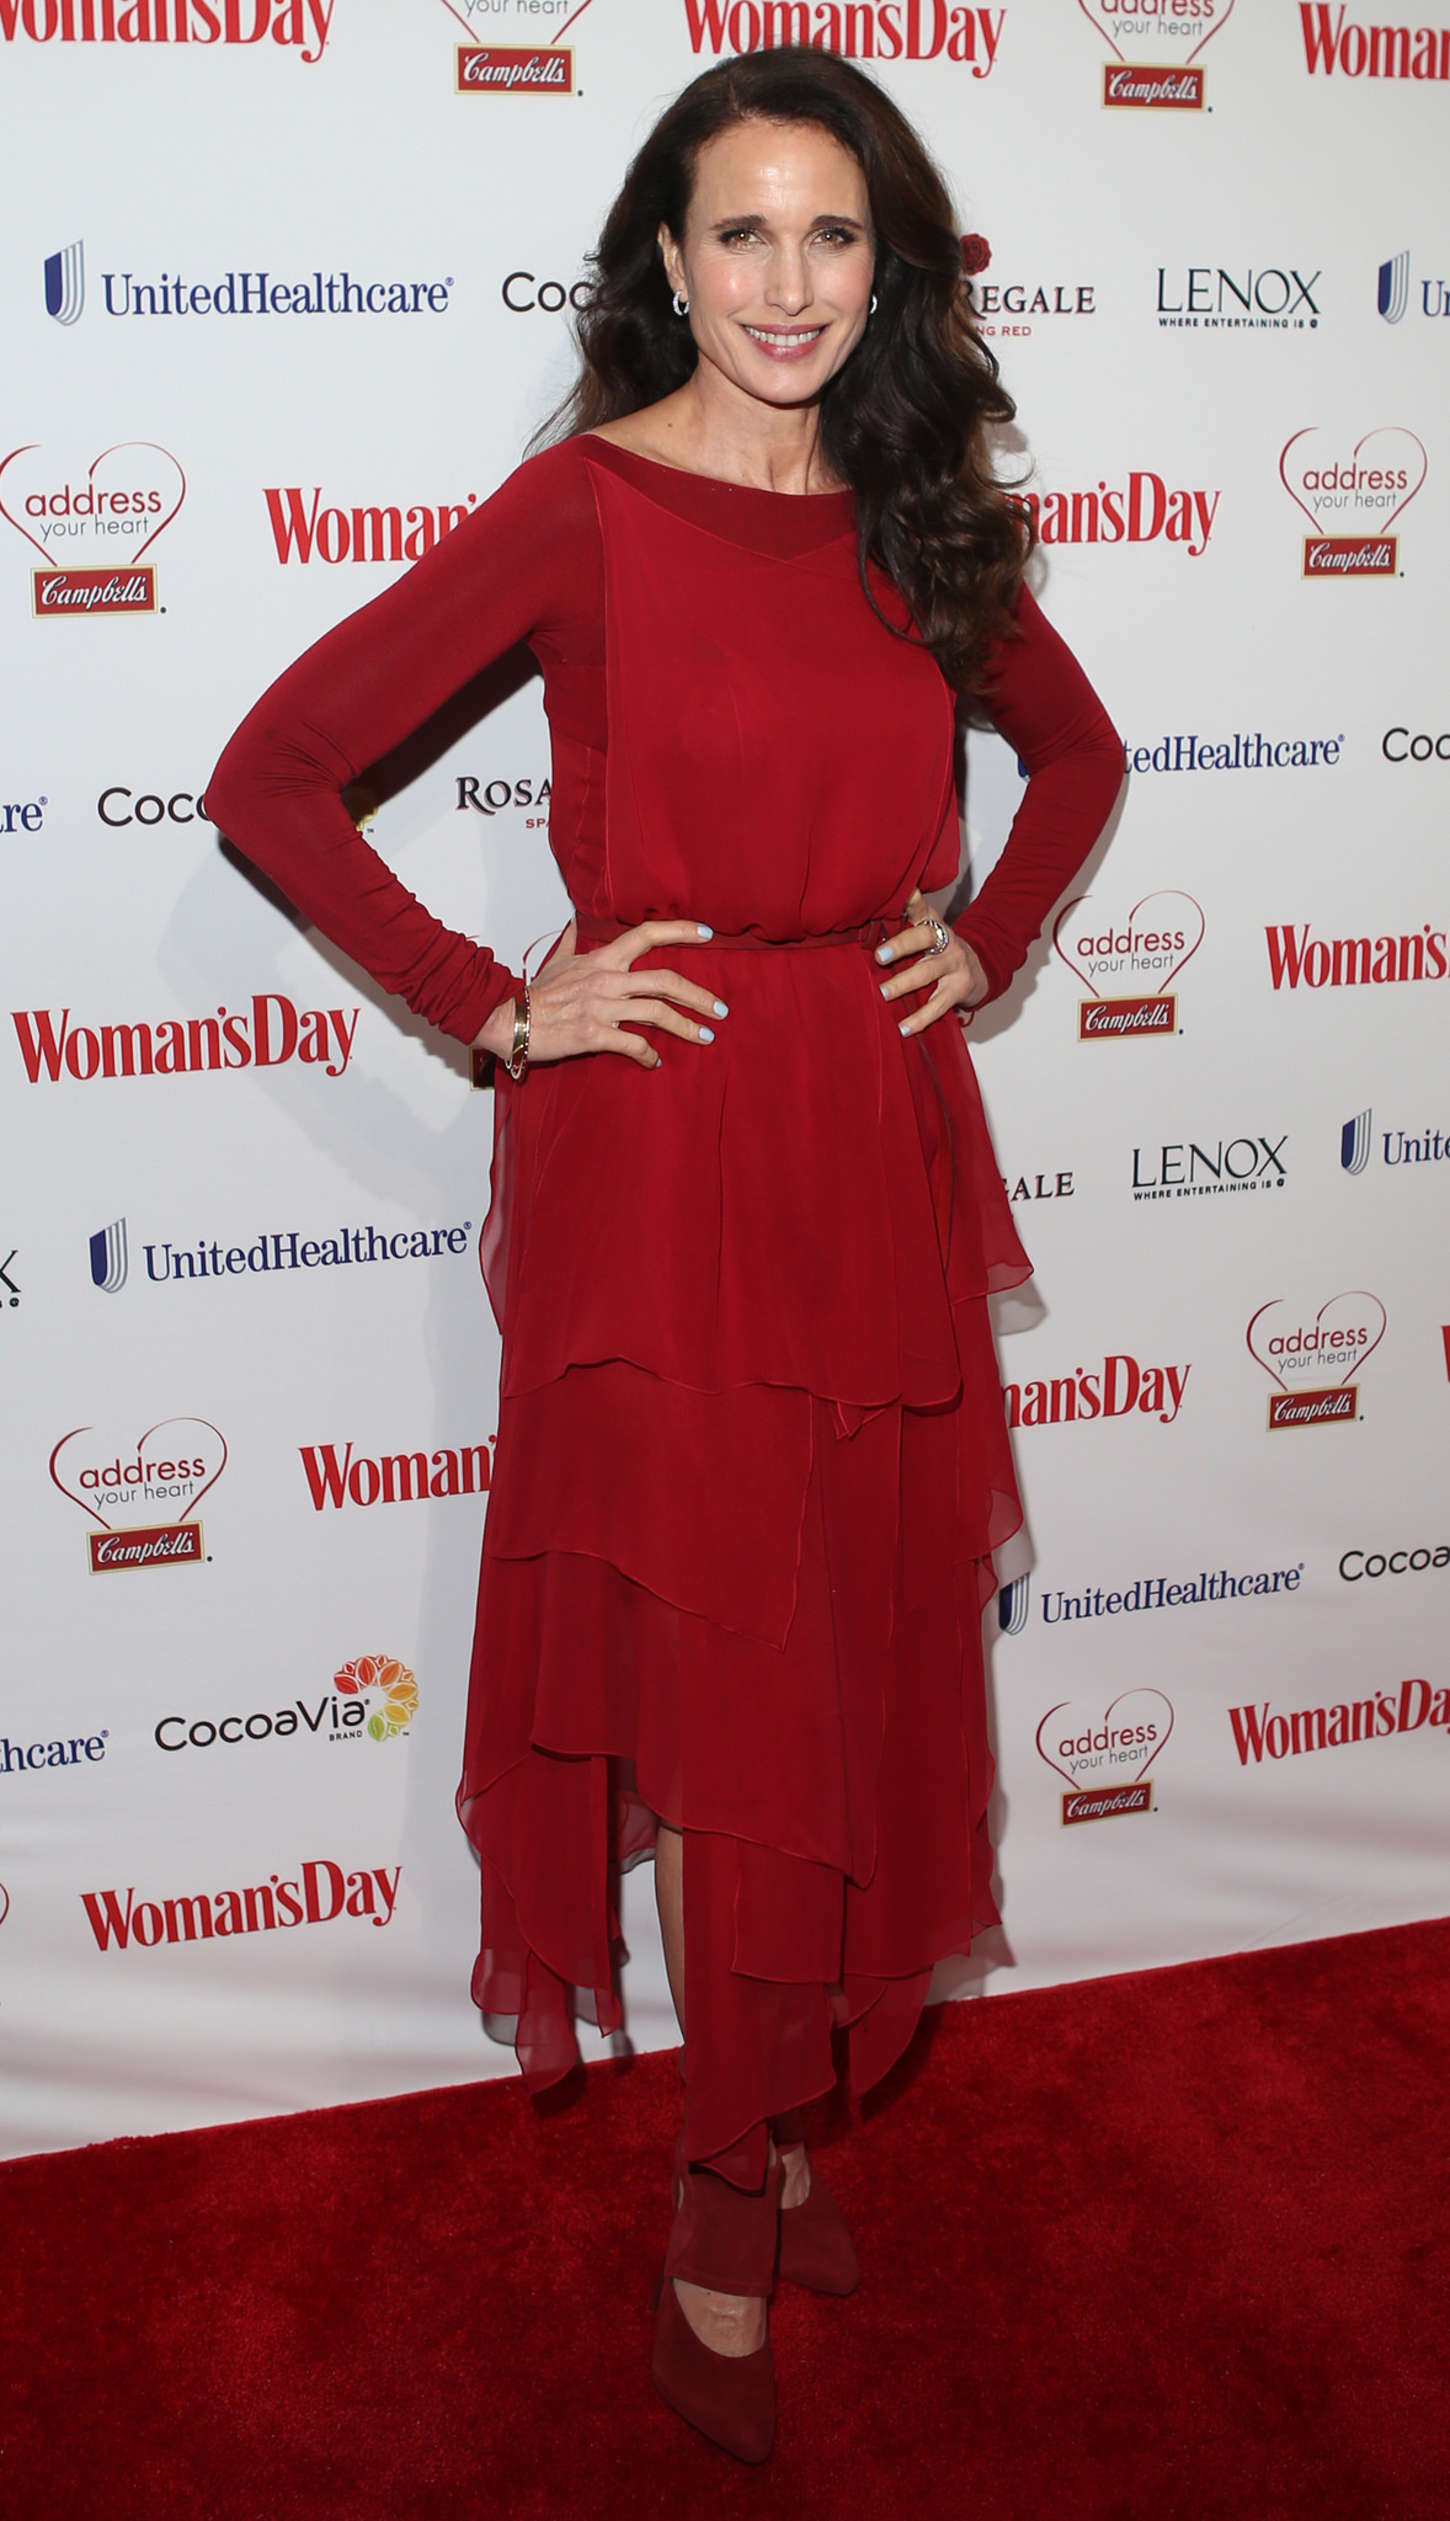 Andie MacDowell Womans Day Red Dress Awards in New York City